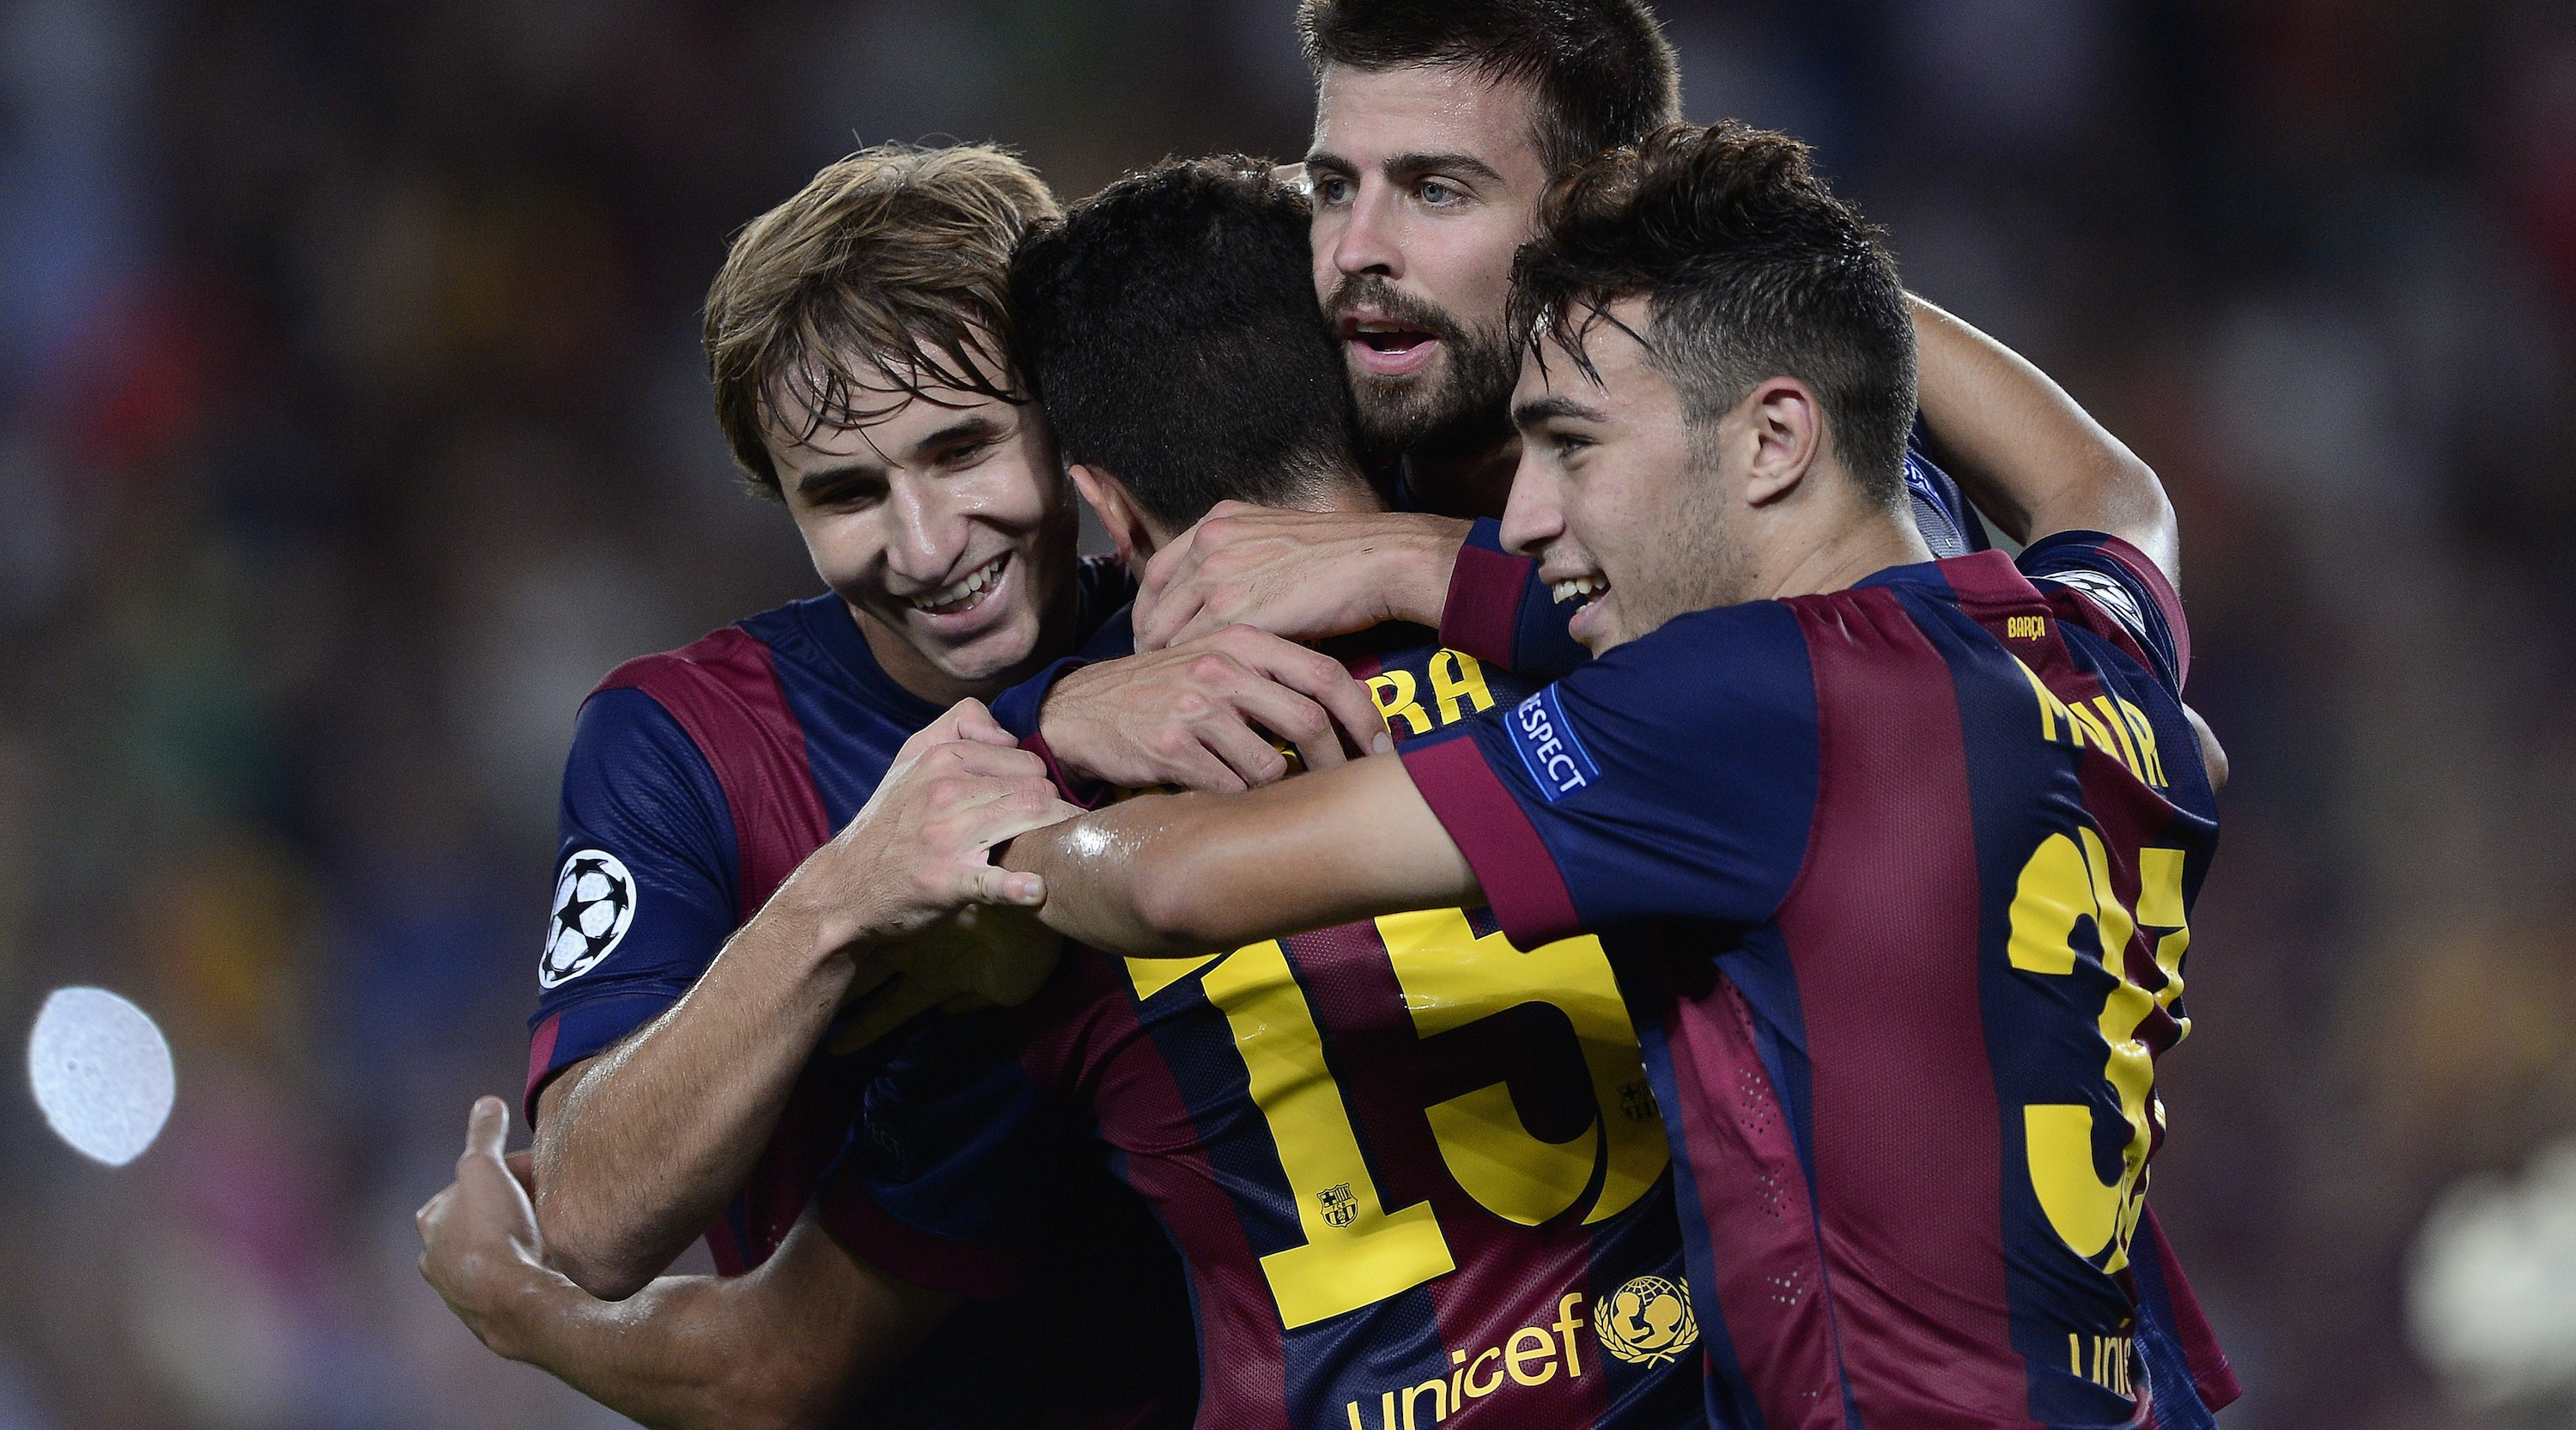 Barcelona's defender Gerard Pique (C) celebrates with Barcelona's midfielder Sergi Samper (L) and Barcelona's forward Munir (R) after scoring during the UEFA Champions League football match FC Barcelona vs APOEL FC at the Camp Nou stadium in Barcelona on September 17, 2014. AFP PHOTO / JOSEP LAGO (Photo credit should read JOSEP LAGO/AFP/Getty Images)